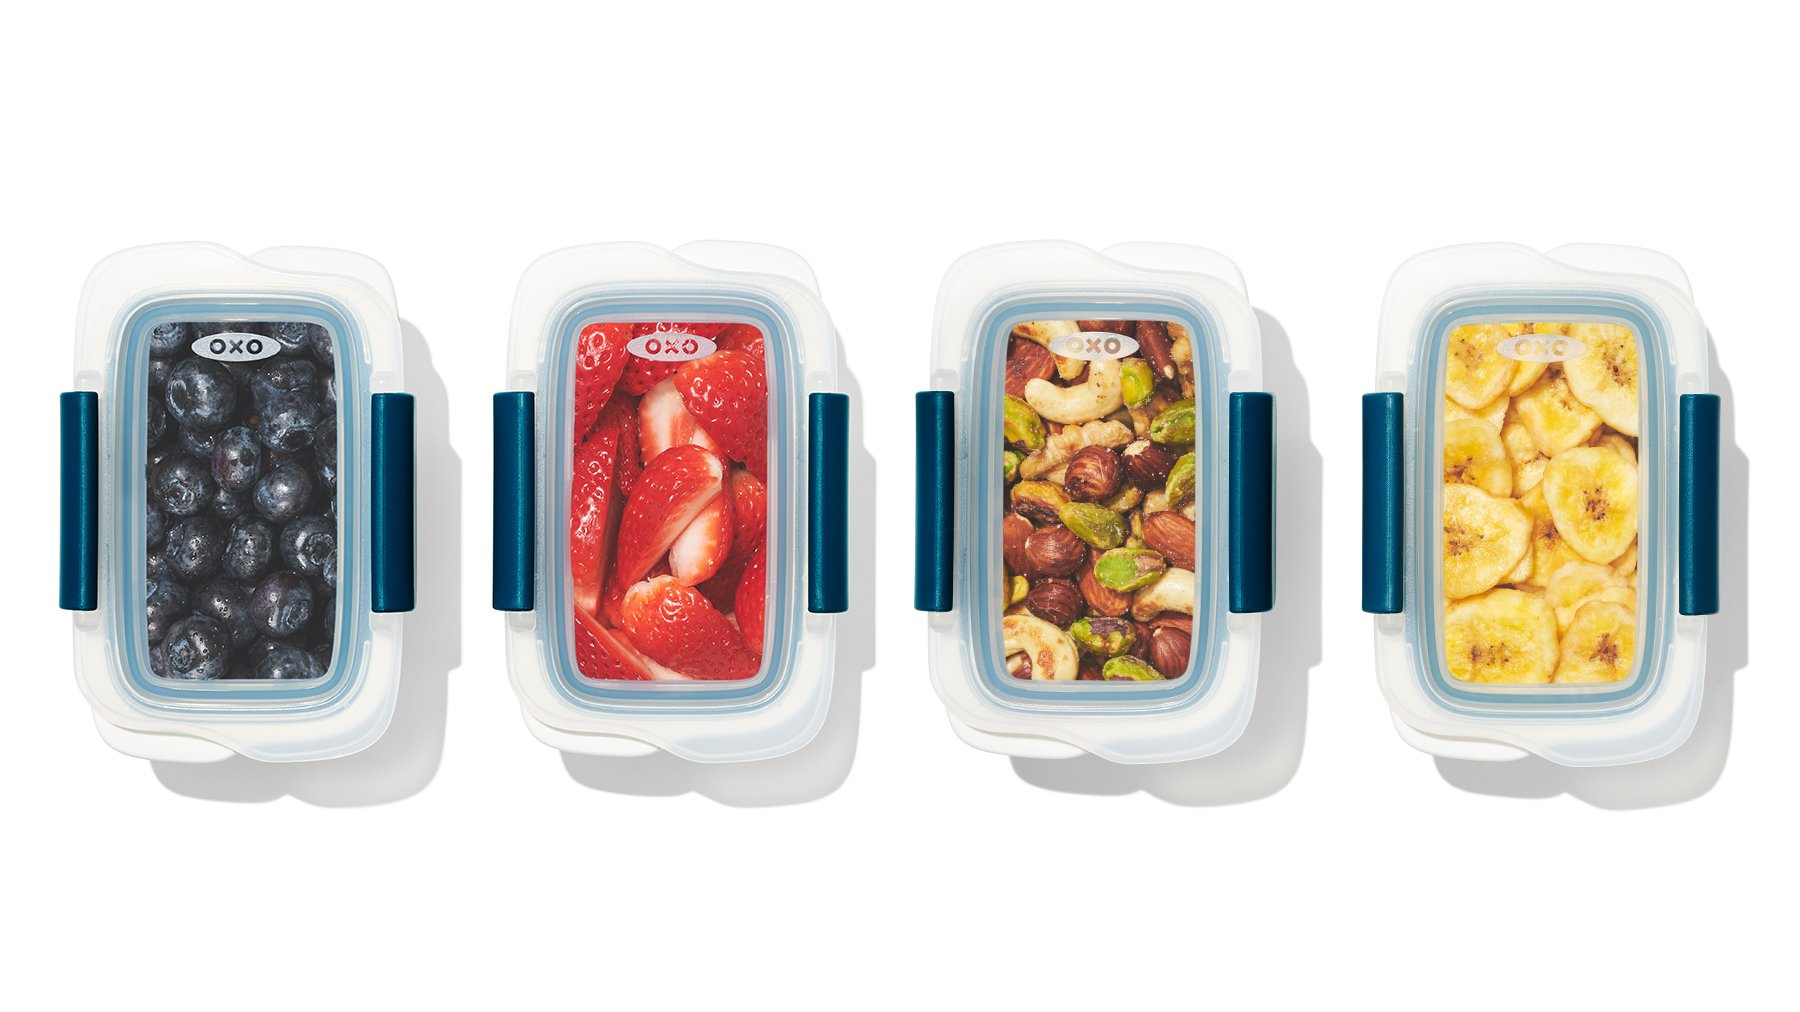 hiking snacks in snack containers